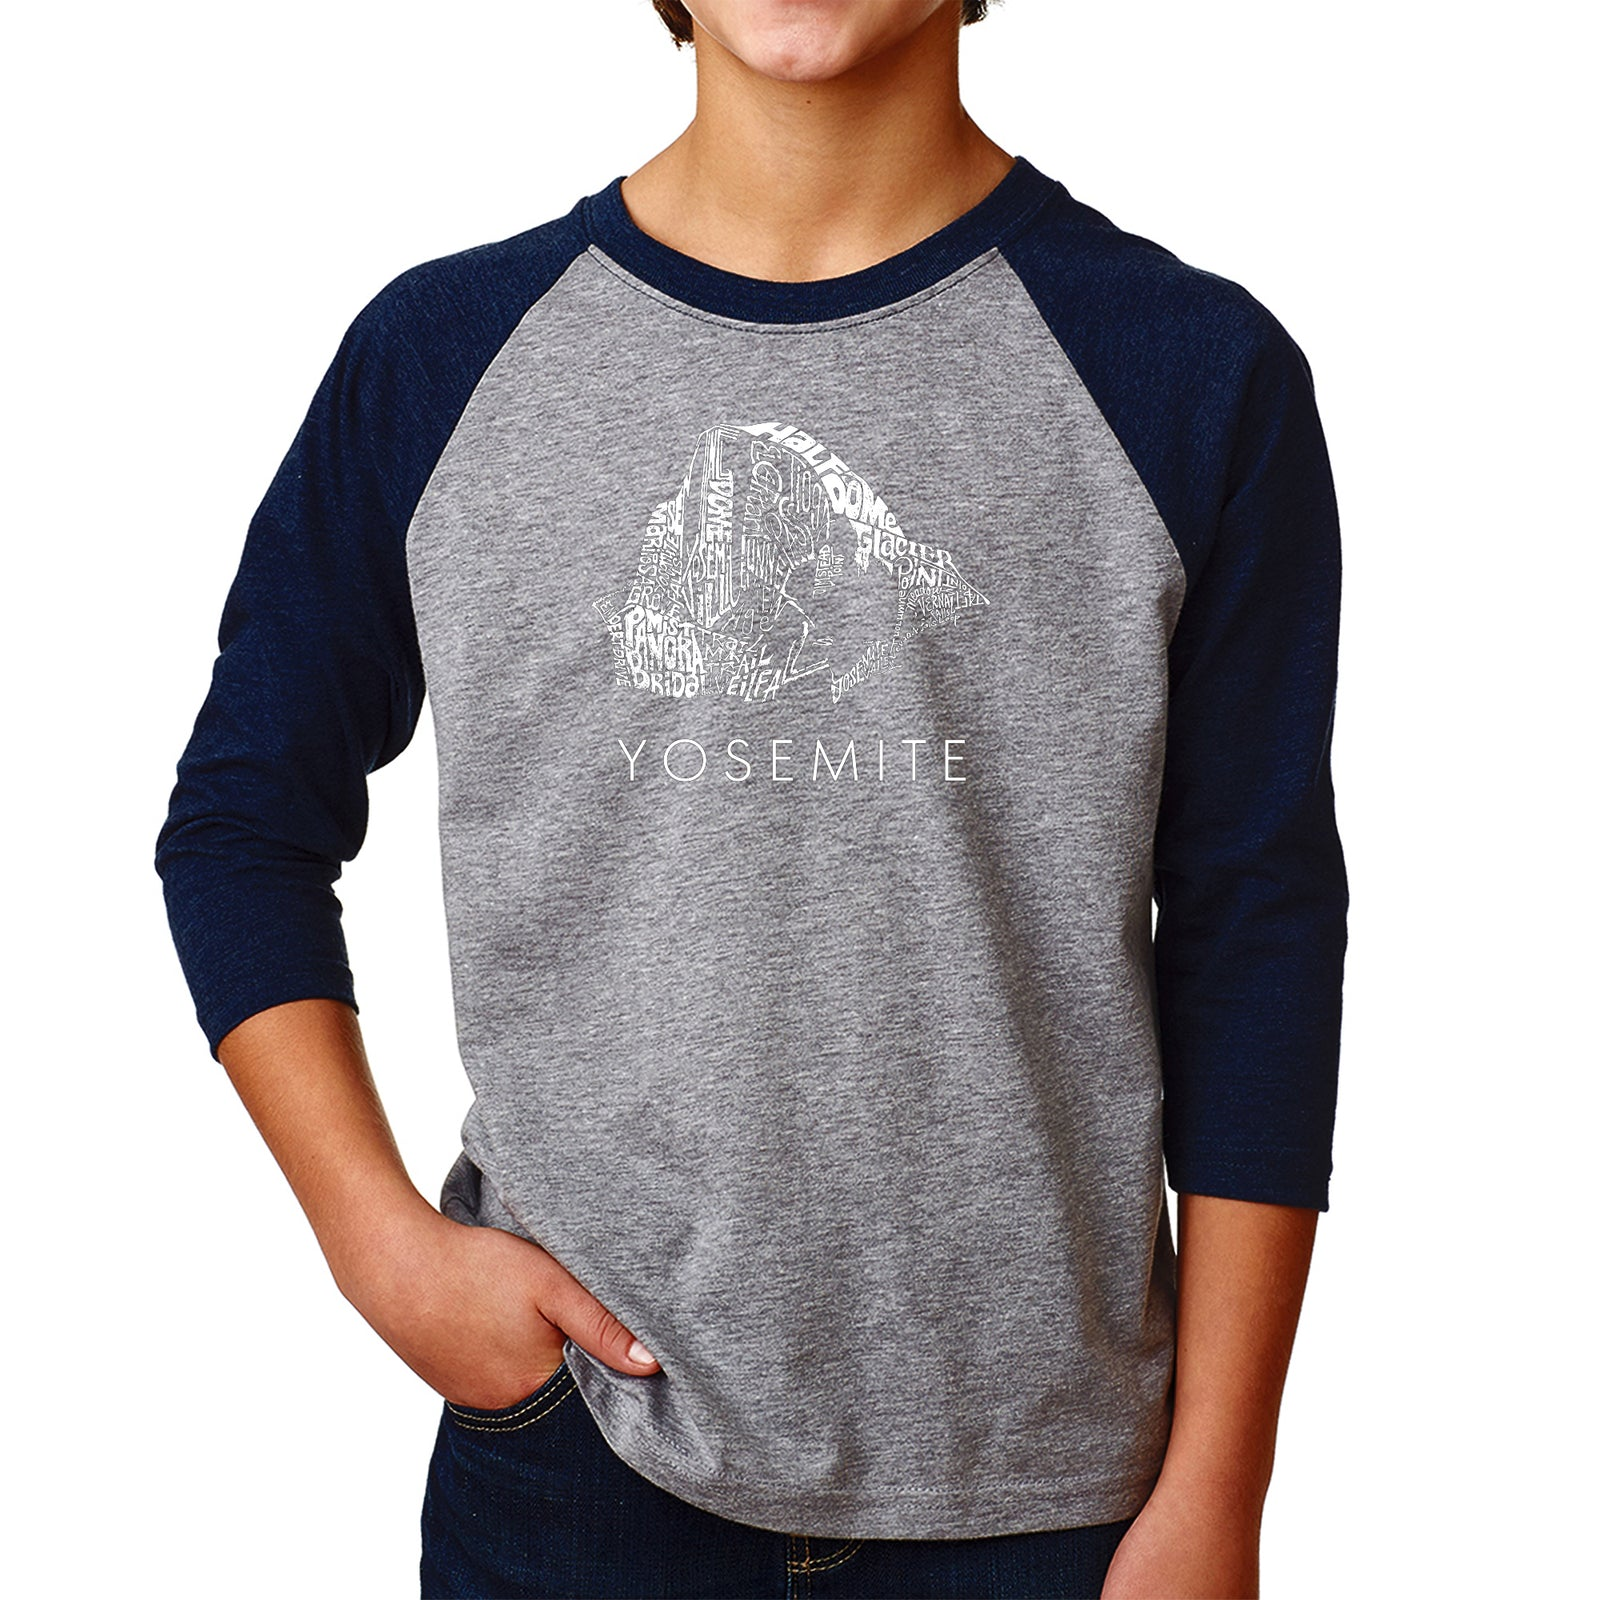 Boy's Raglan Baseball Word Art T-shirt - Yosemite